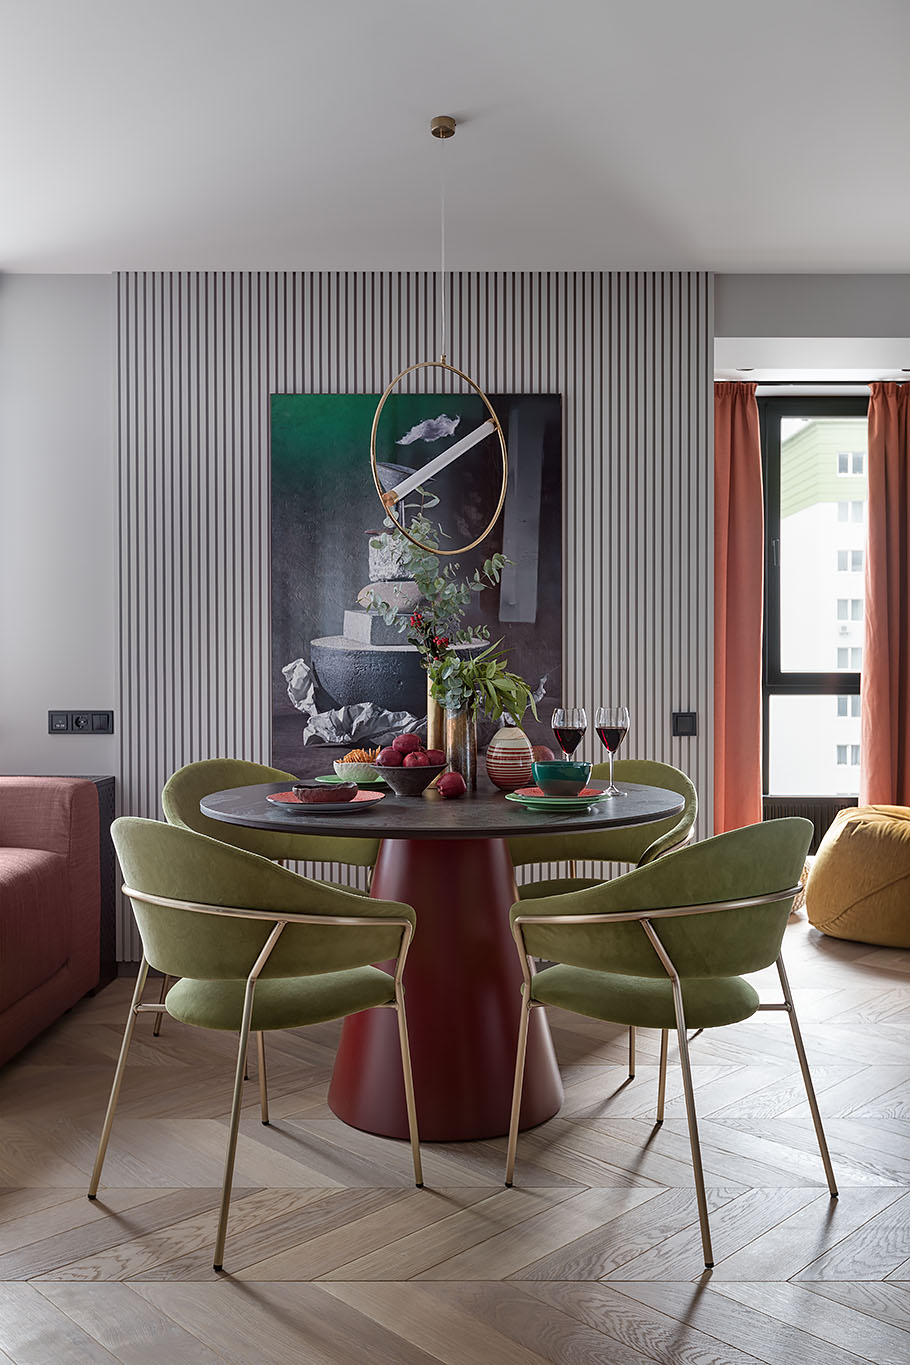 Separating the living space from the kitchen is a round dining table, a minimalist pendant light, and chairs with metallic frames.